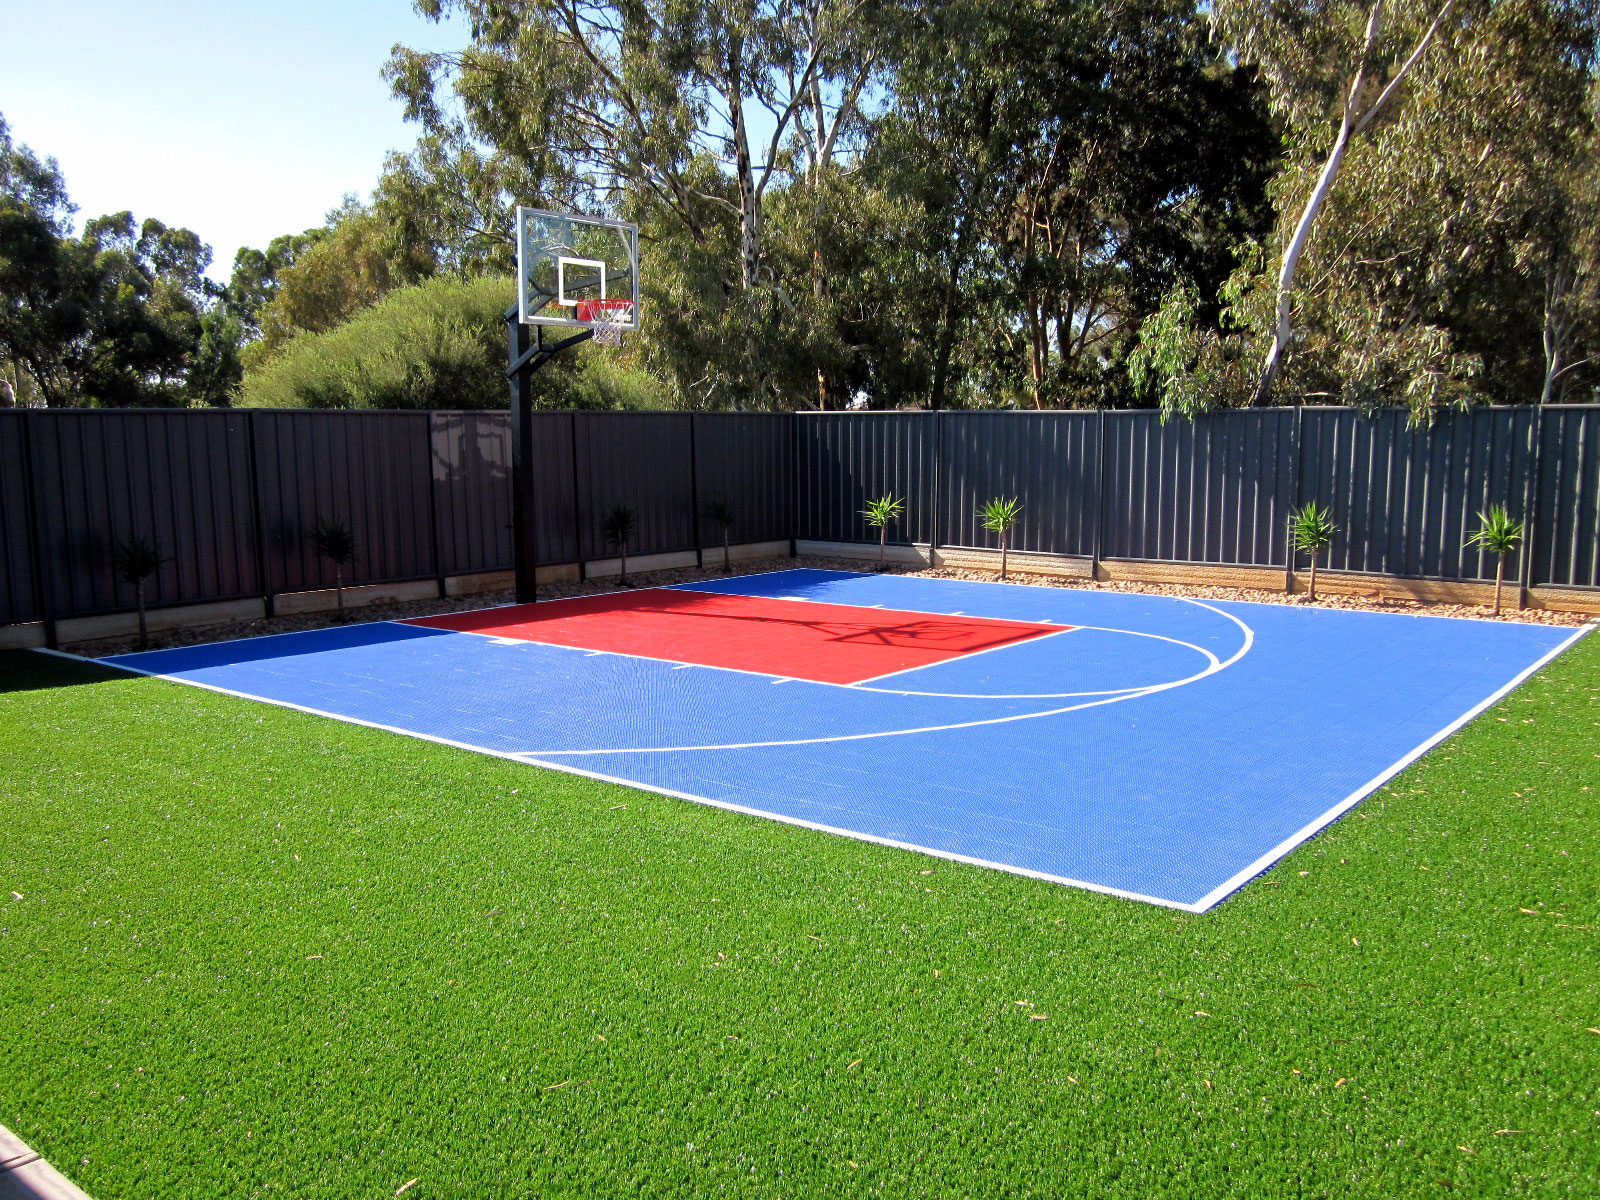 Small basketball half court in bright blue and red